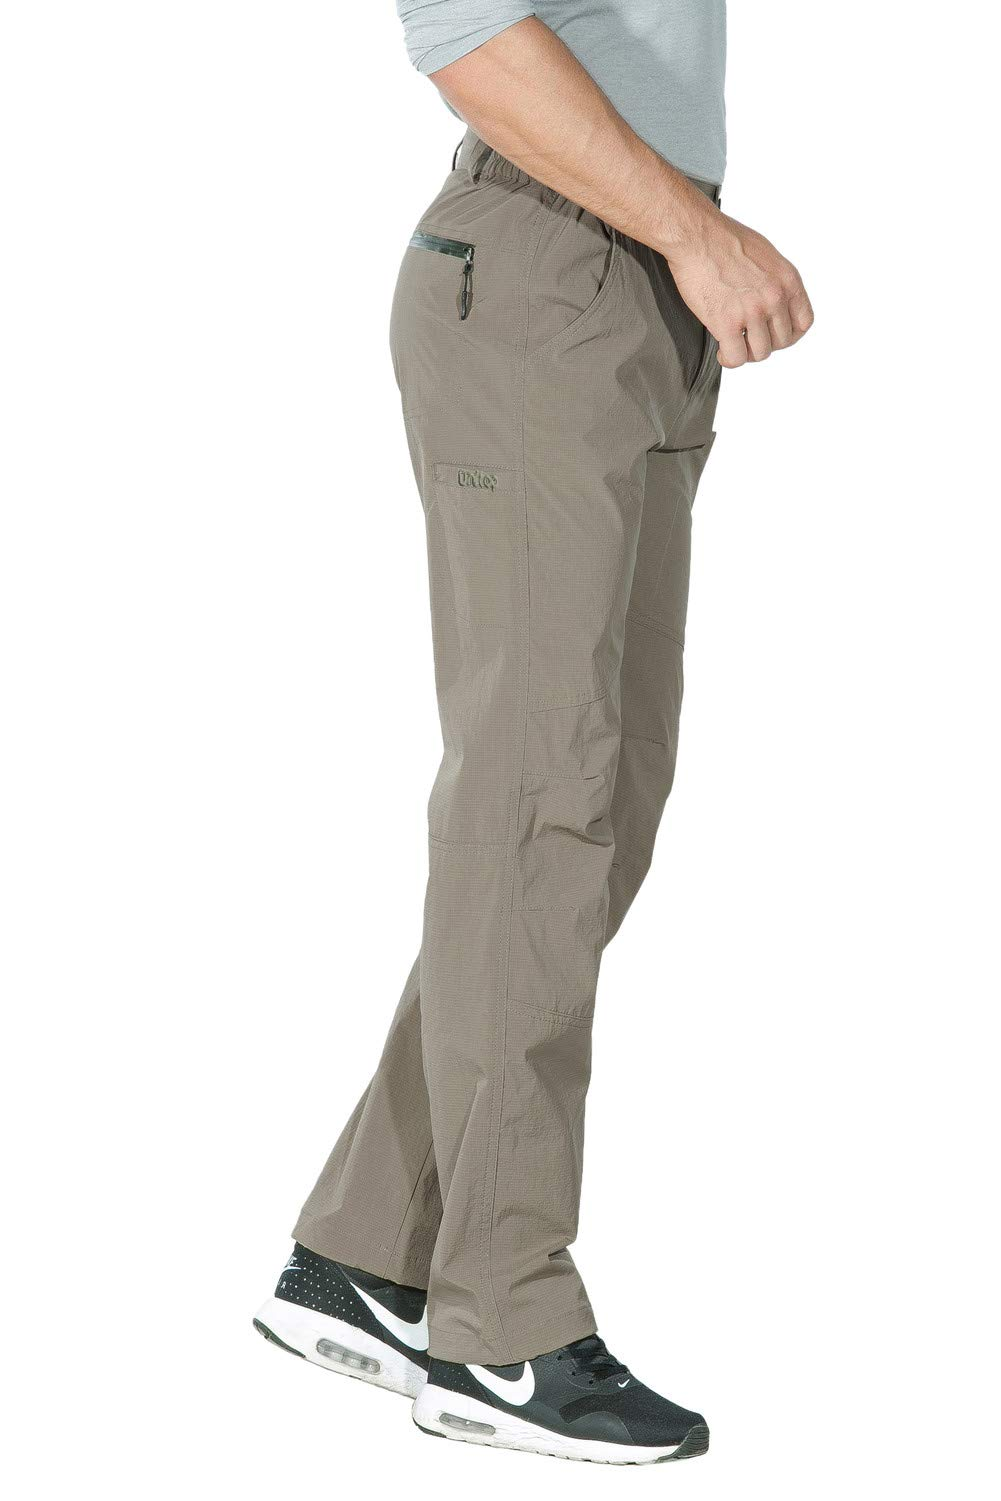 Unitop Men's Breathable Quick Dry Hiking Pants